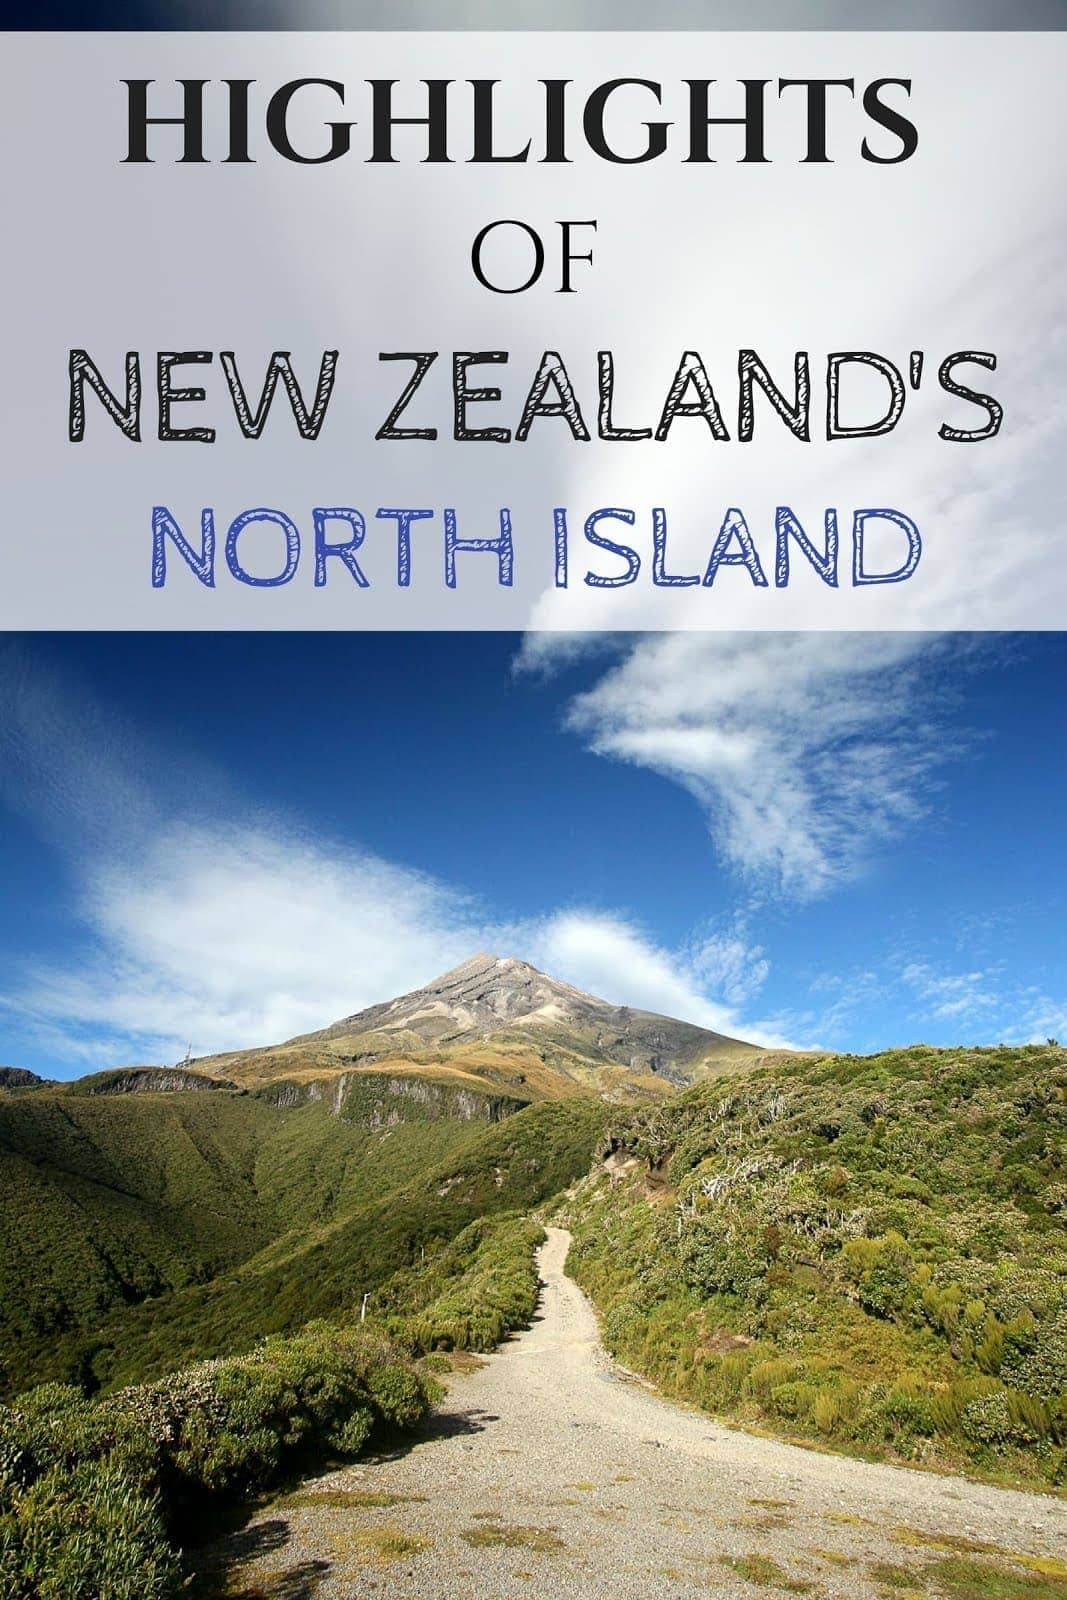 Highlights of New Zealand's north island, including Rotorua, Tongaririo, the East Cape and Northland.